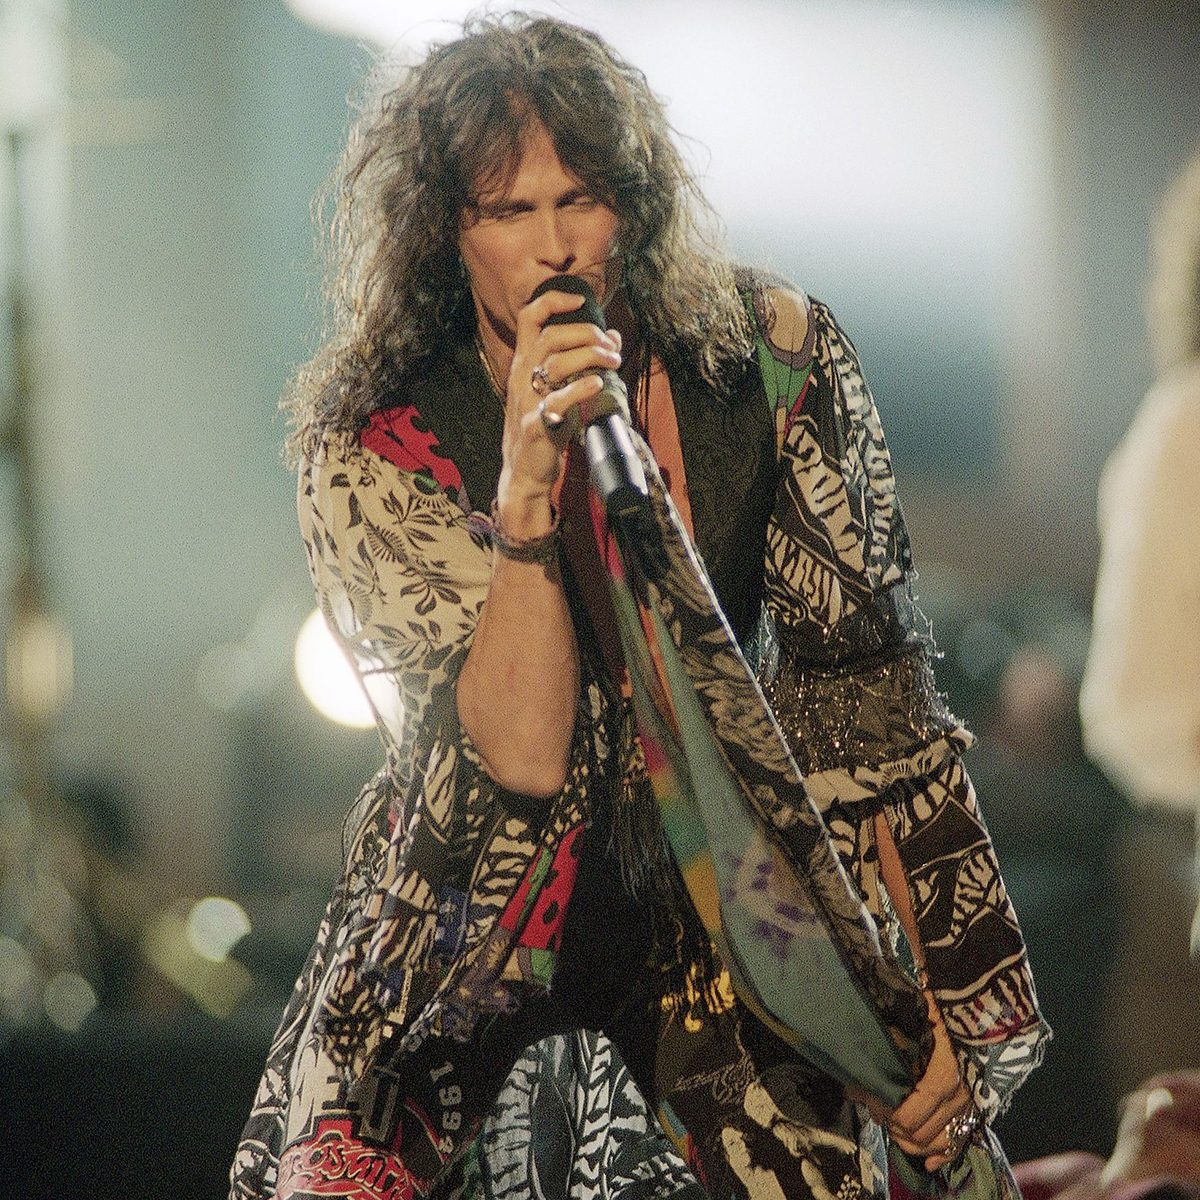 """Mandatory Credit: Photo by Bebeto Matthews/AP/Shutterstock (6528346a) Steven Tyler Steven Tyler of the band Aerosmith performs at the 1994 MTV Video Music Awards show at New York's Radio City Music Hall on . Aerosmith took home three awards for video of the year, best group video and viewer's choice award for """"Cryin Steven Tyler, New York, USA"""